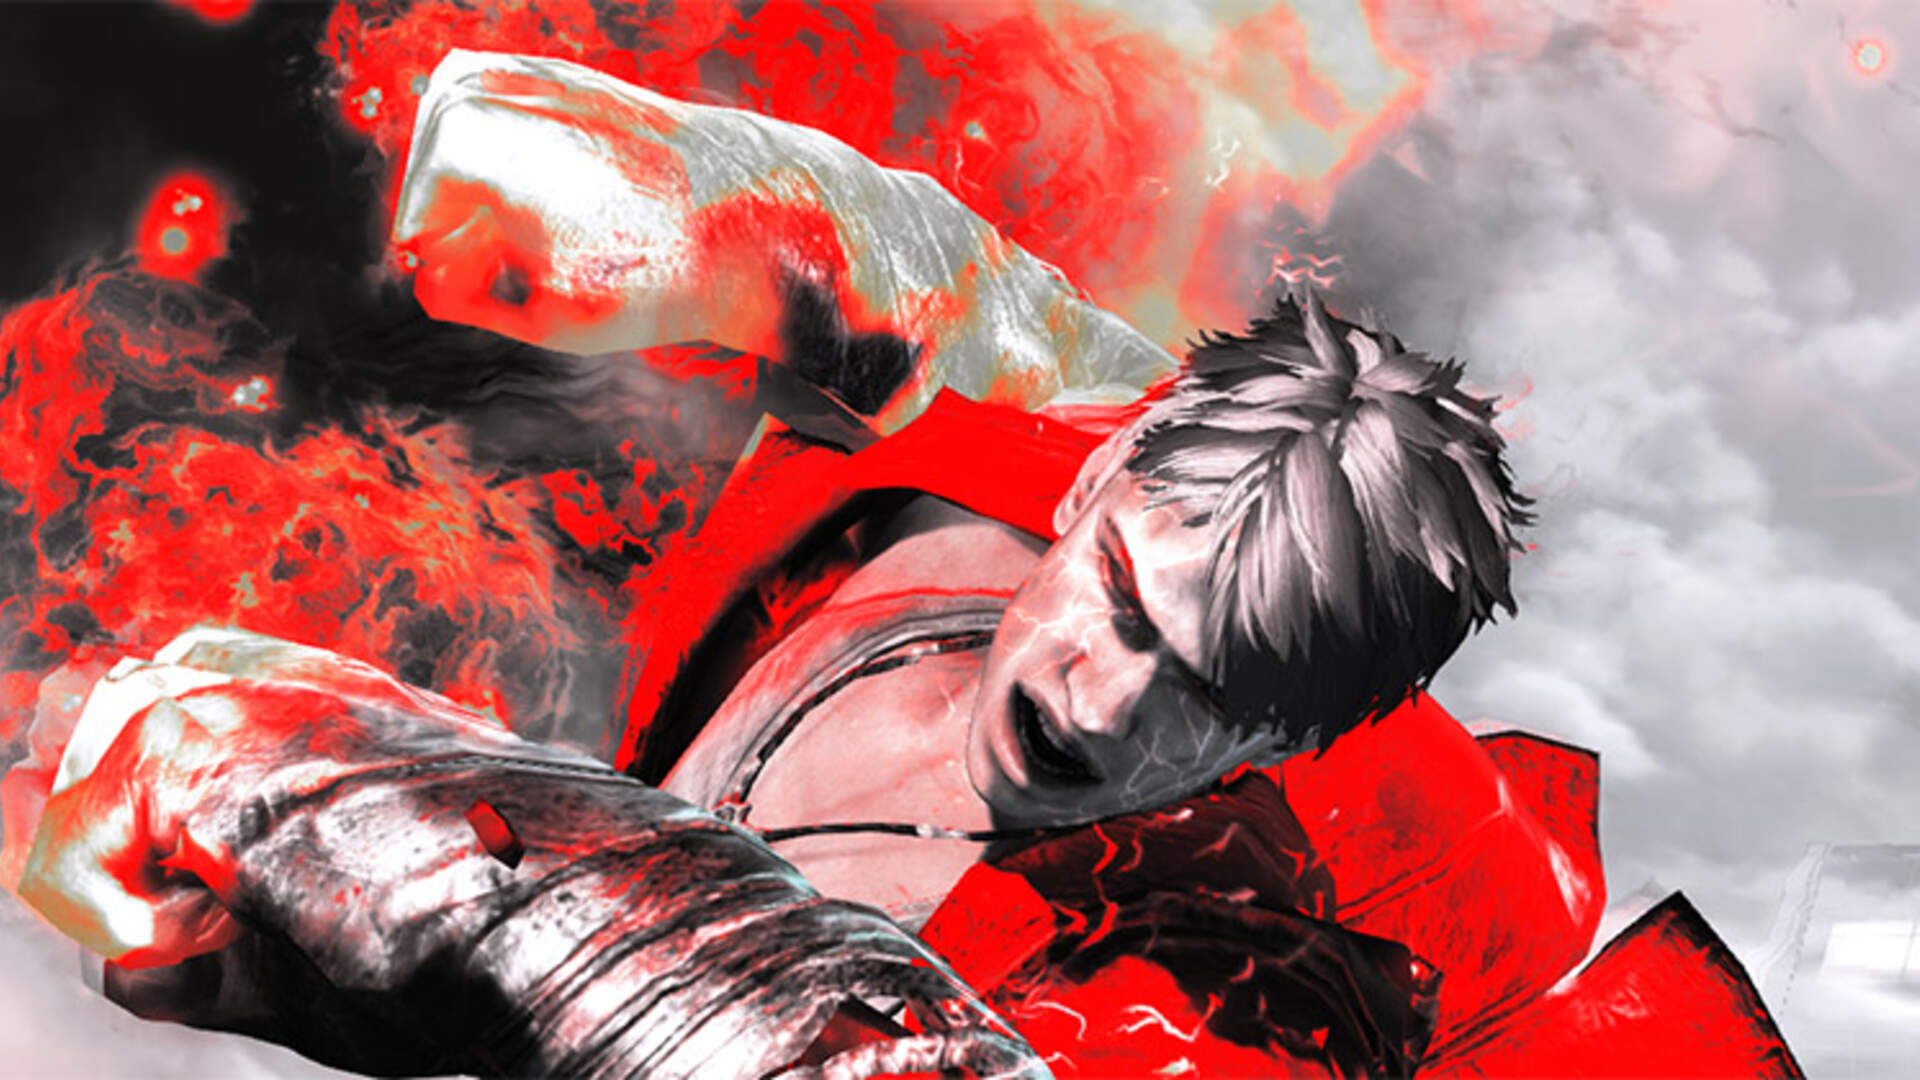 Two Years After the Pseudo-Scandal, DmC's Definitive Edition Gives this Great Reboot Another Chance to Shine